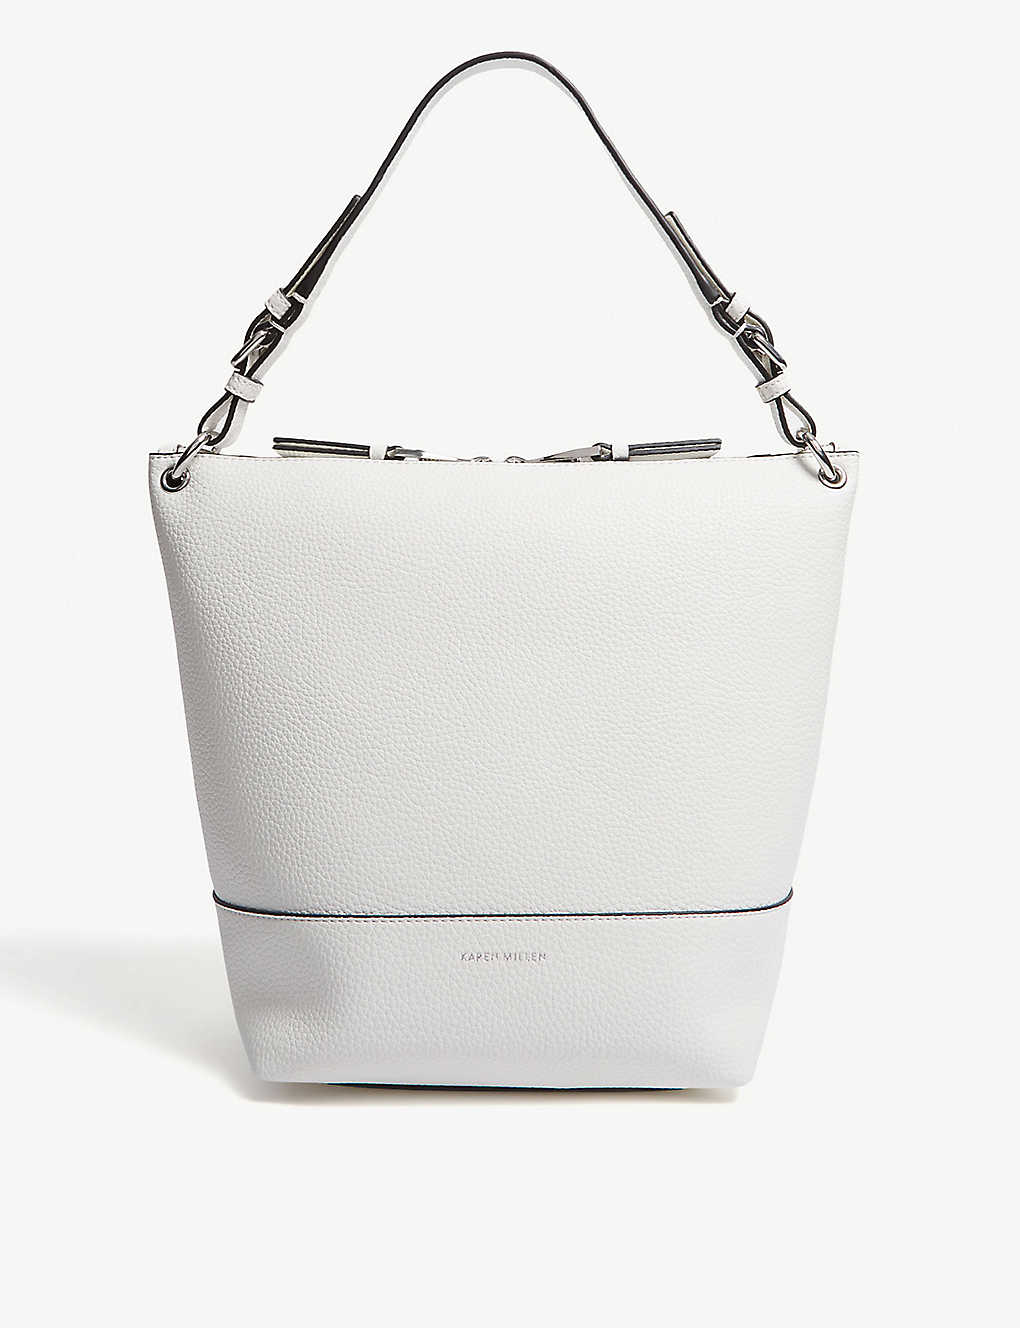 a6662a9b37 KAREN MILLEN - Leather shoulder bag | Selfridges.com